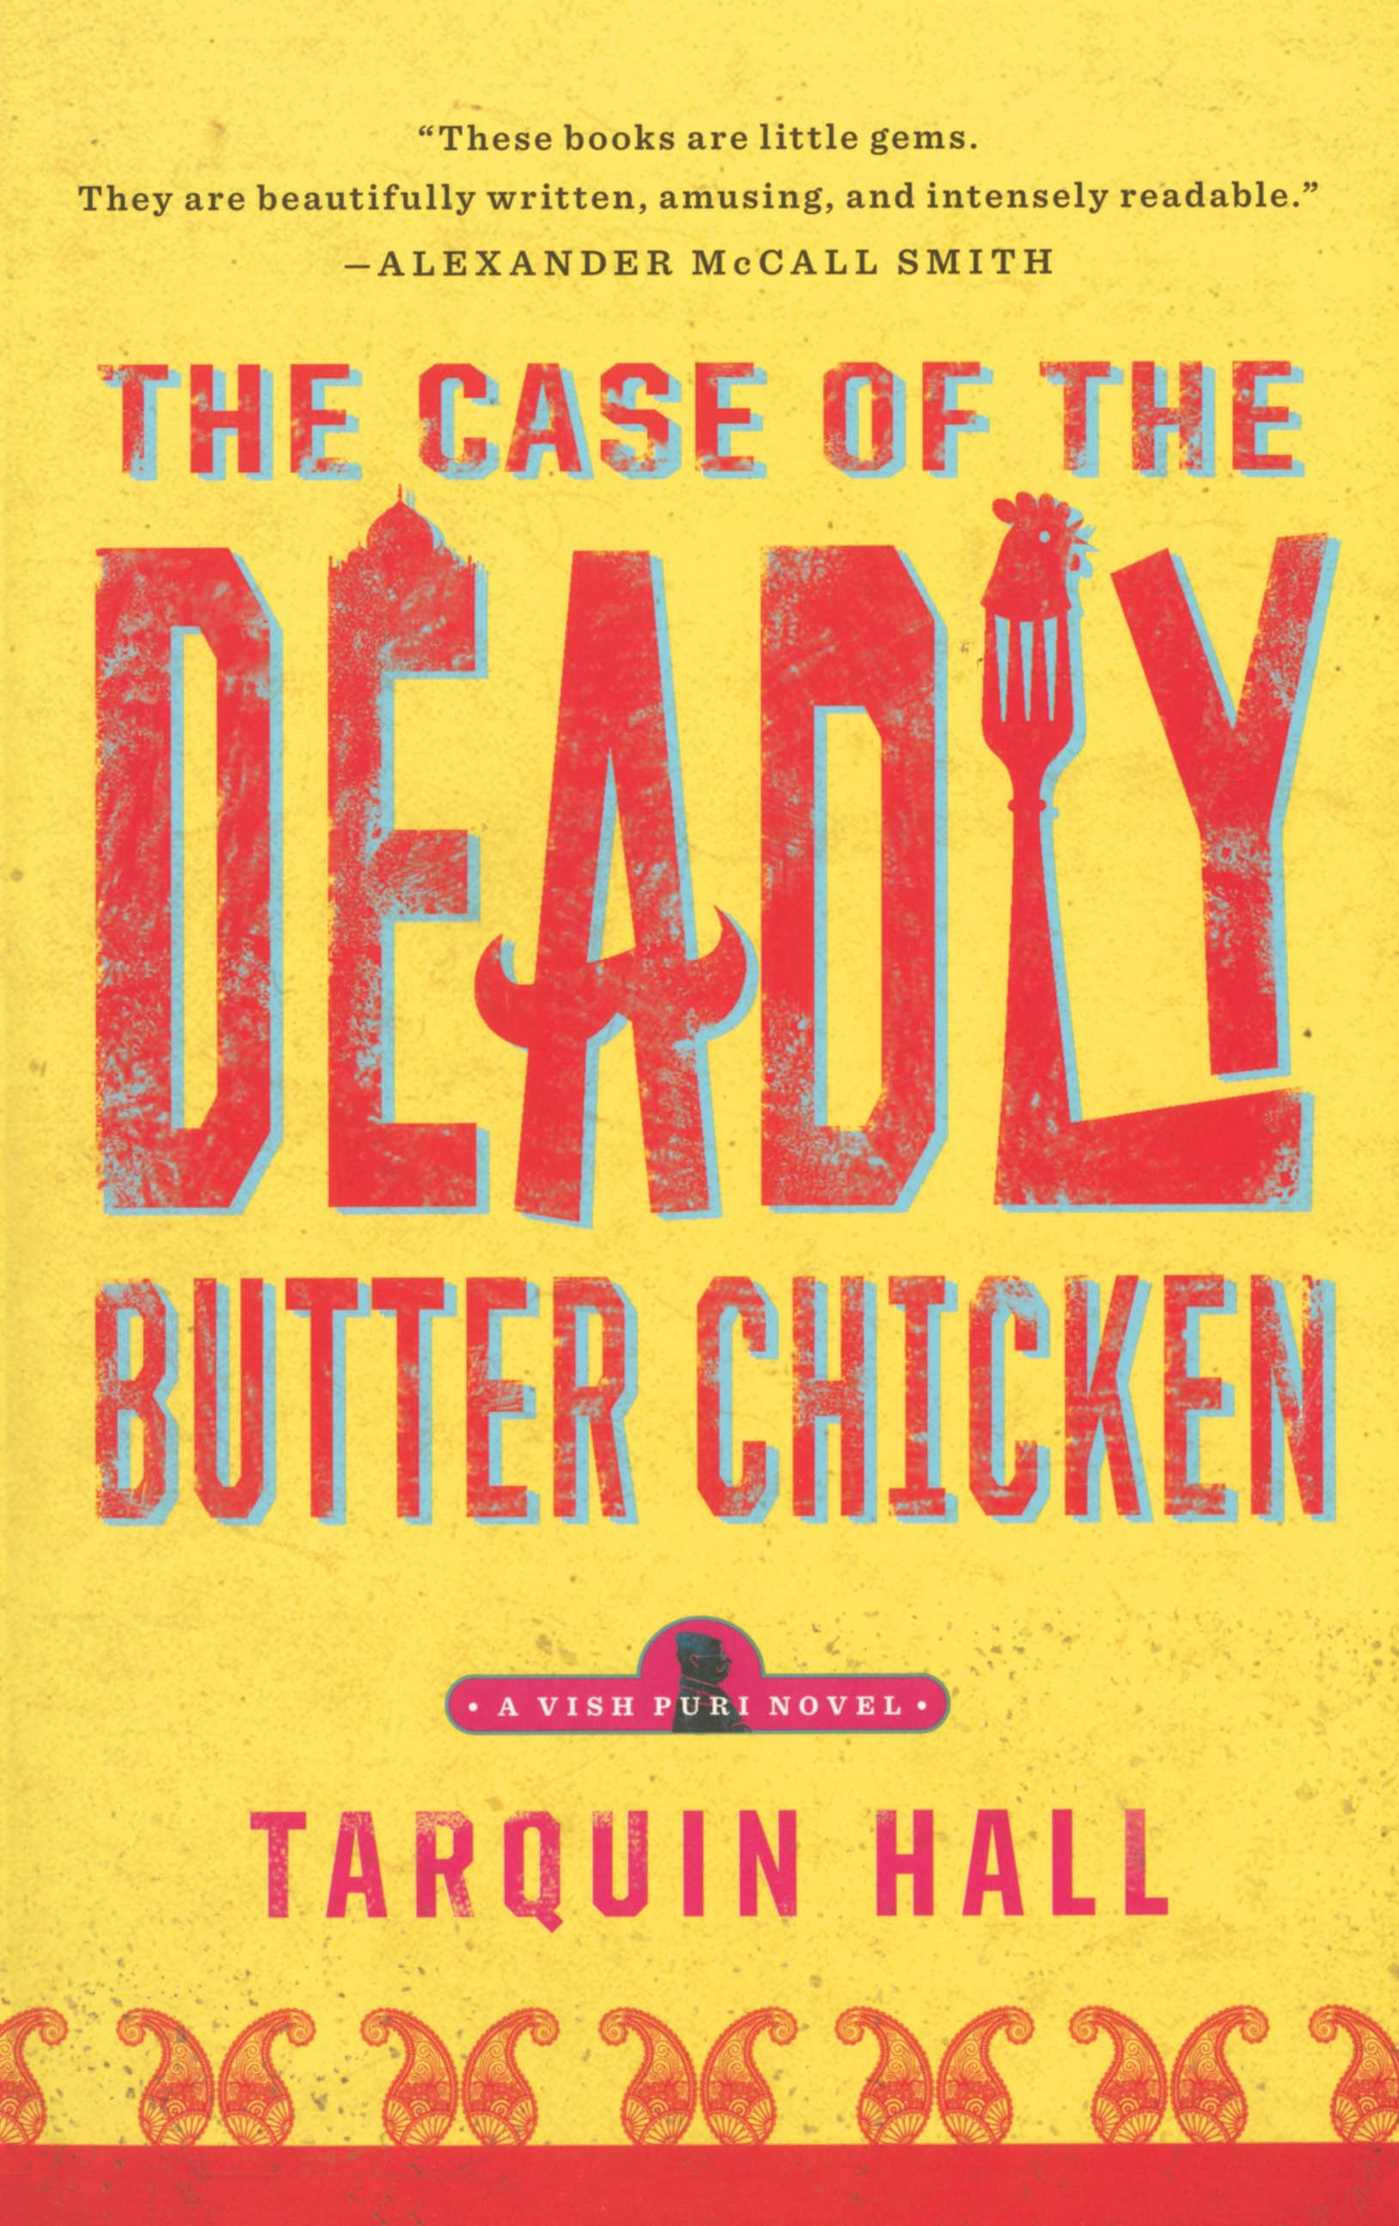 Case-of-the-deadly-butter-chicken-9781451613179_hr